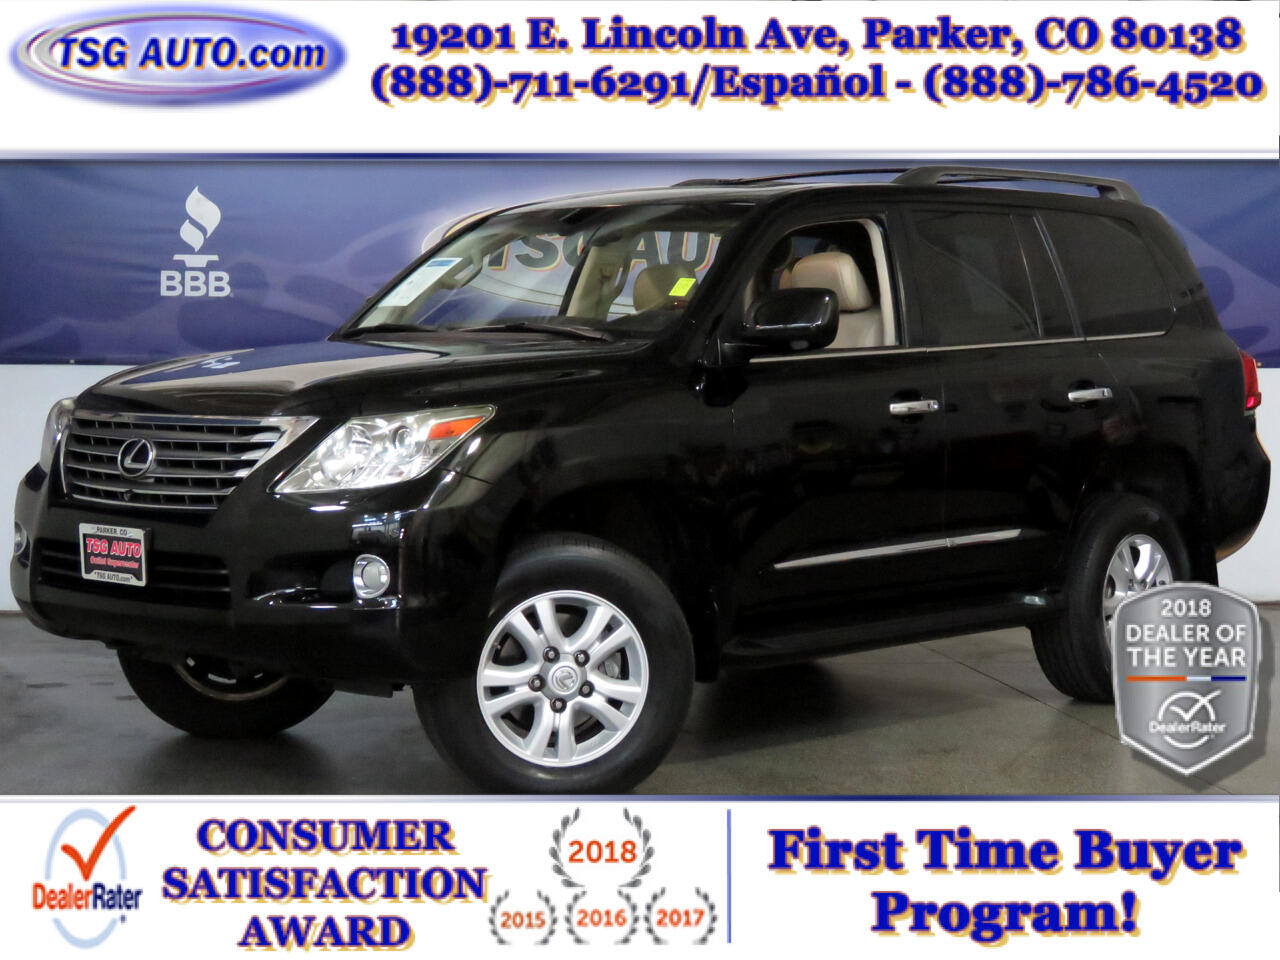 2010 Lexus LX 570 Three-Row